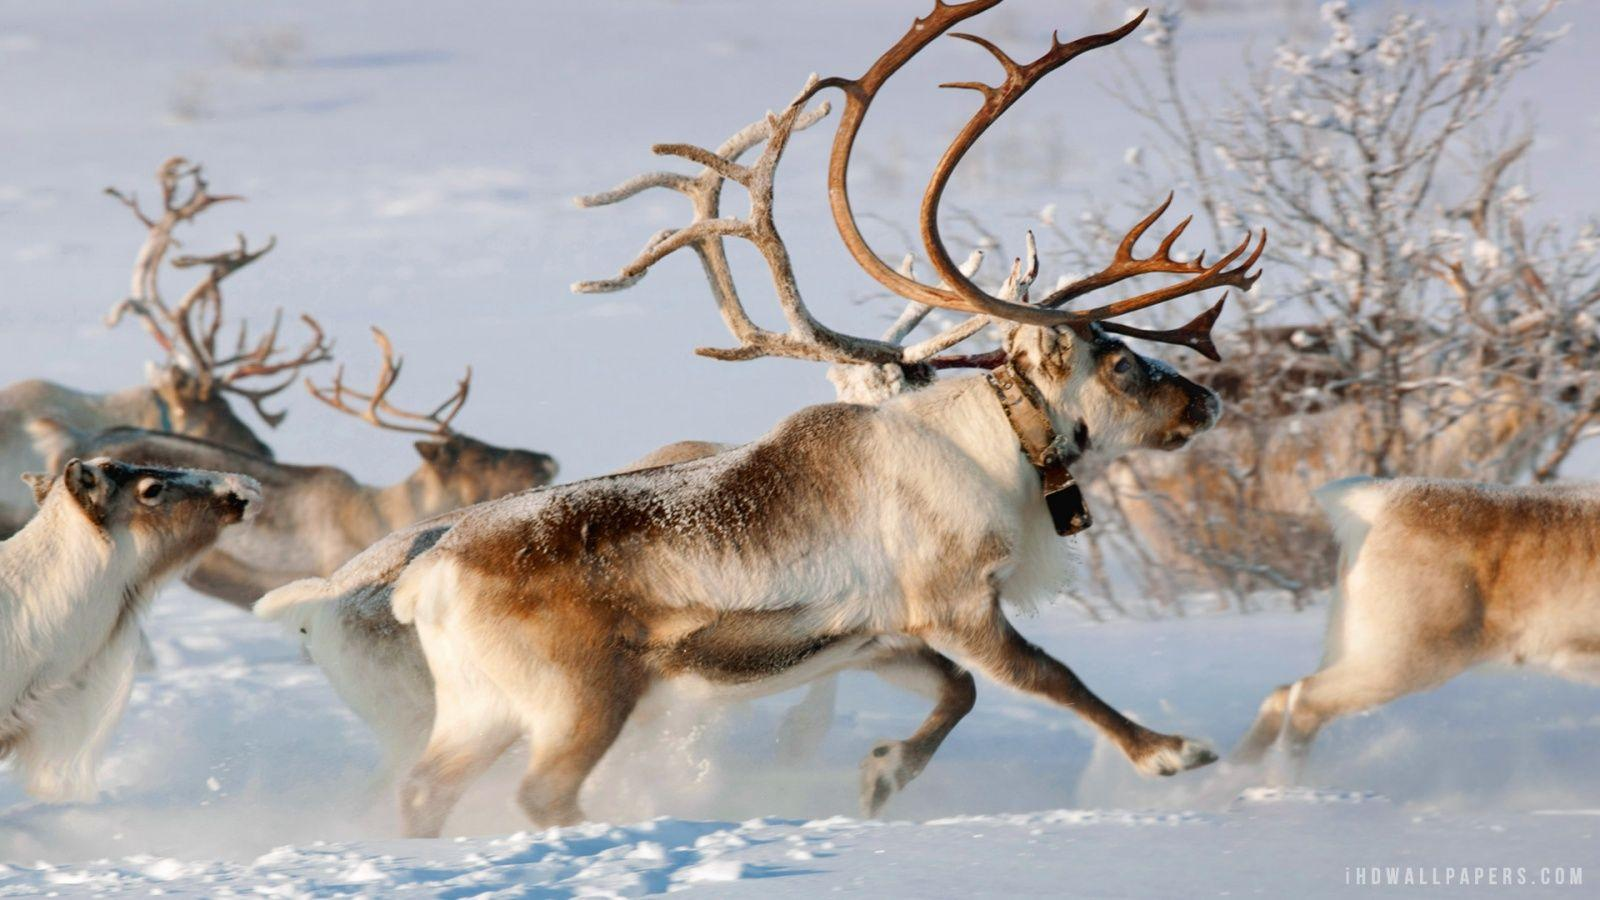 Reindeers Wallpapers Wallpaper Cave HD Wallpapers Download Free Images Wallpaper [1000image.com]